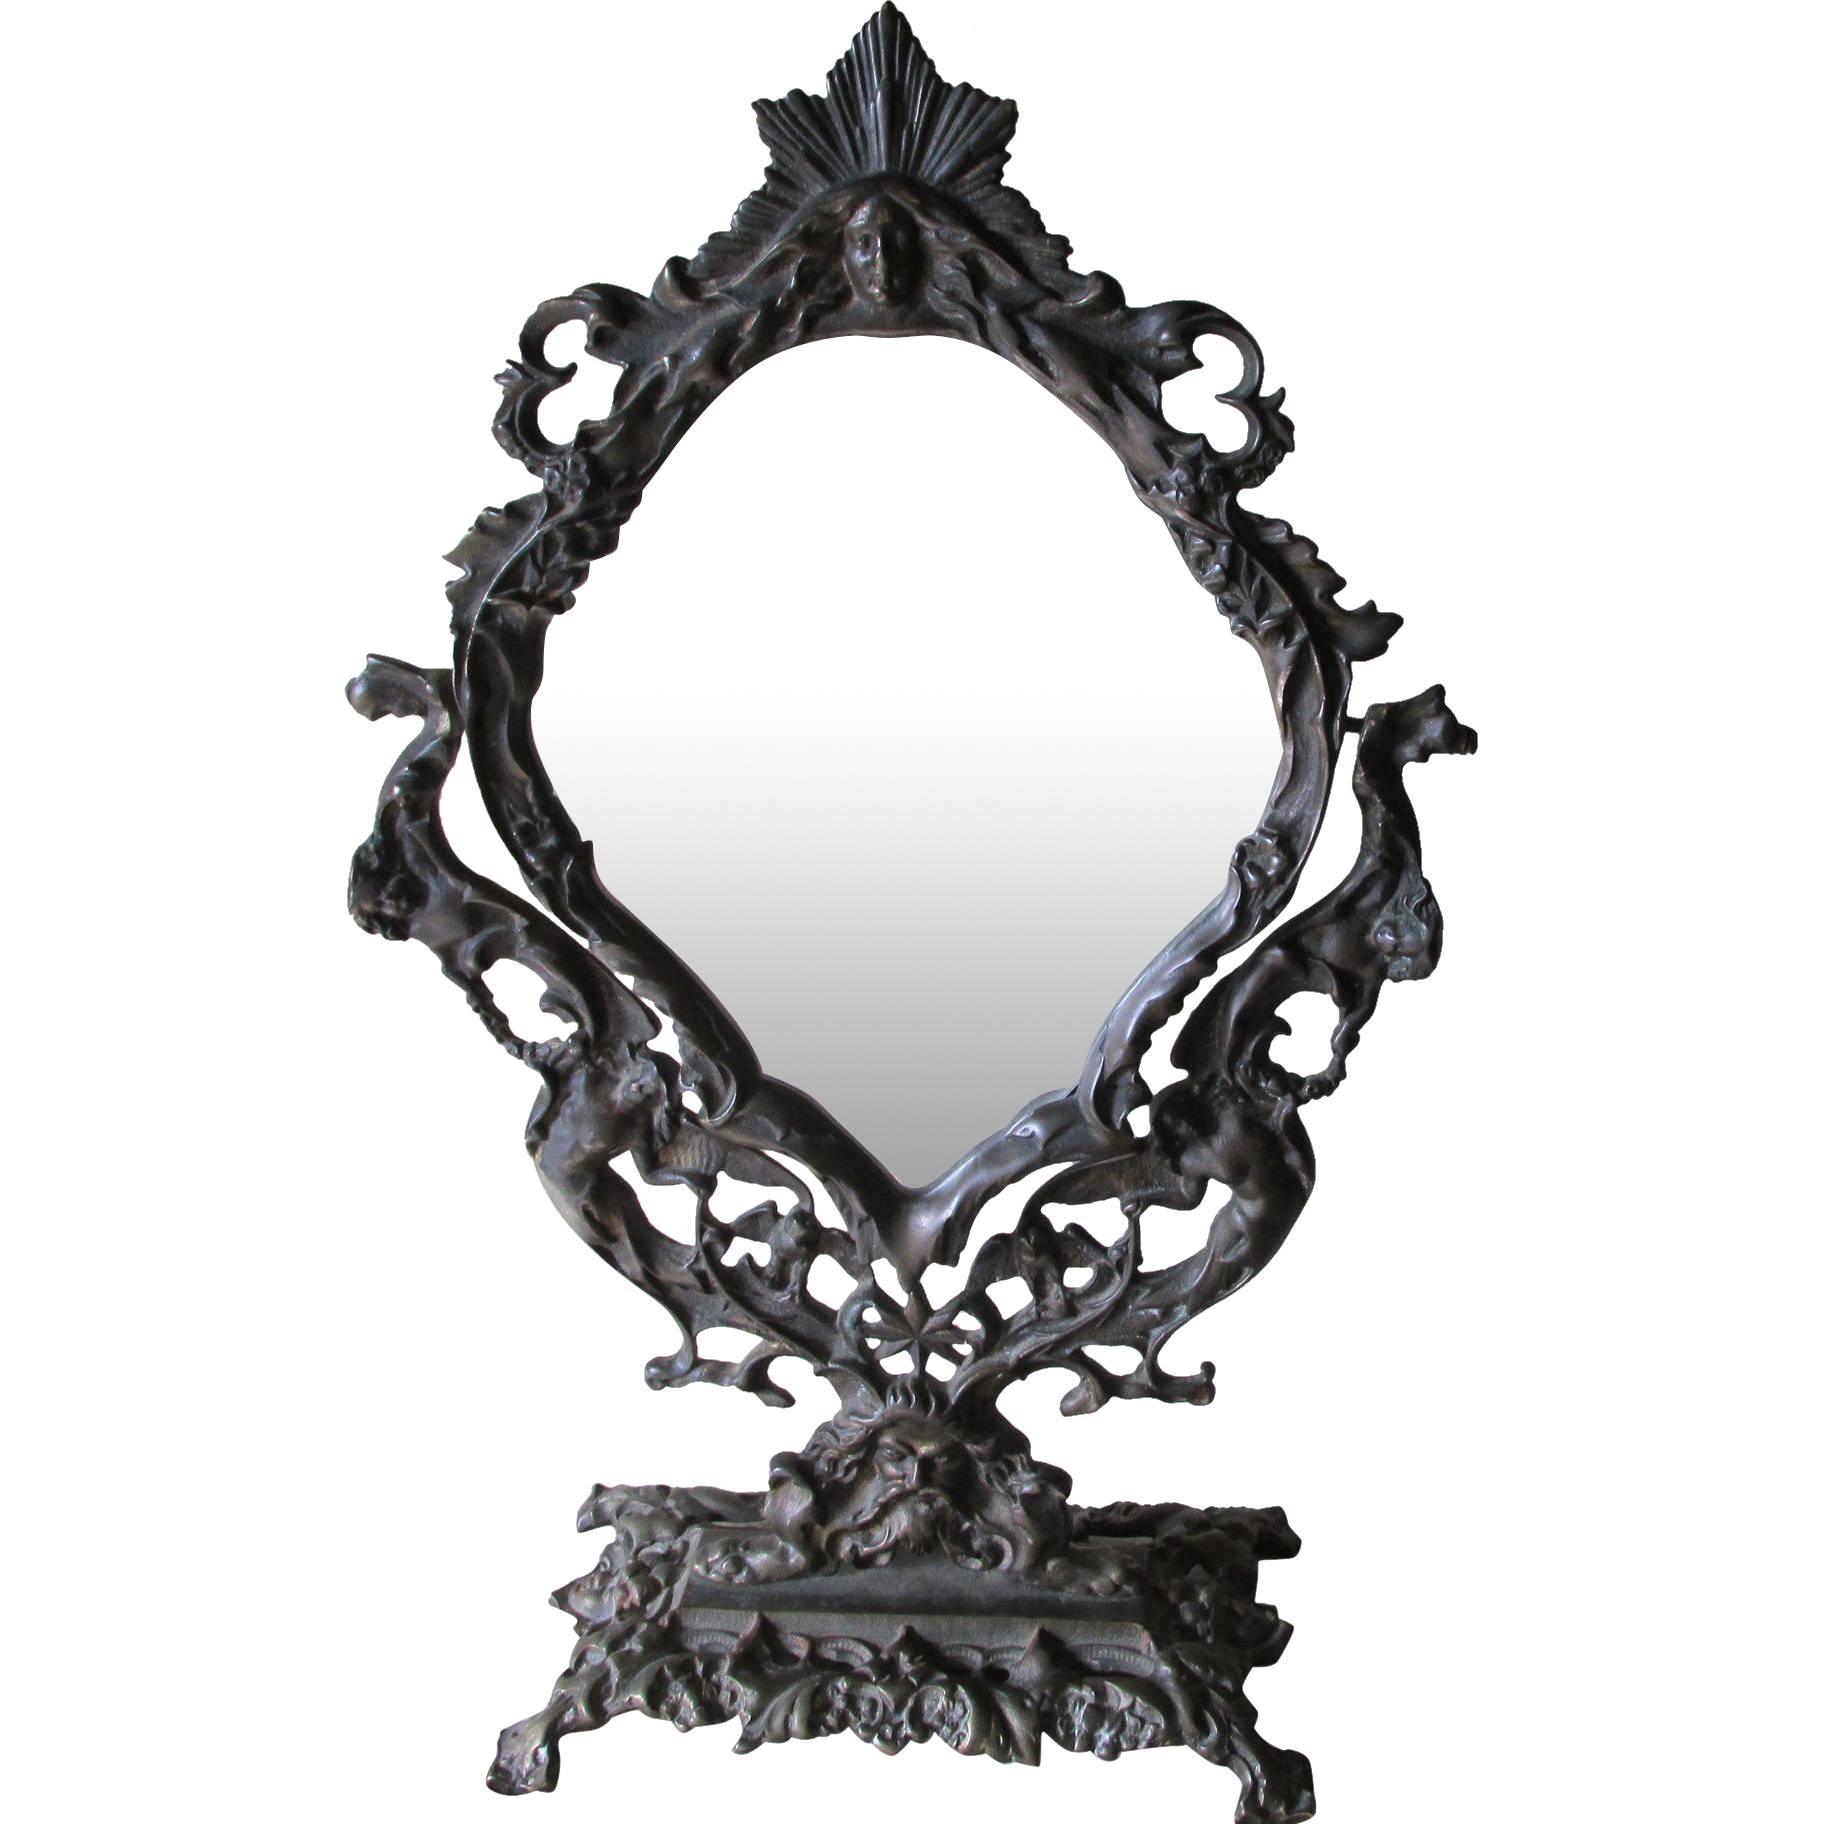 Antique Victorian Gothic Mirror With Angels, Owls, Cherubs pertaining to Black Victorian Style Mirrors (Image 1 of 15)